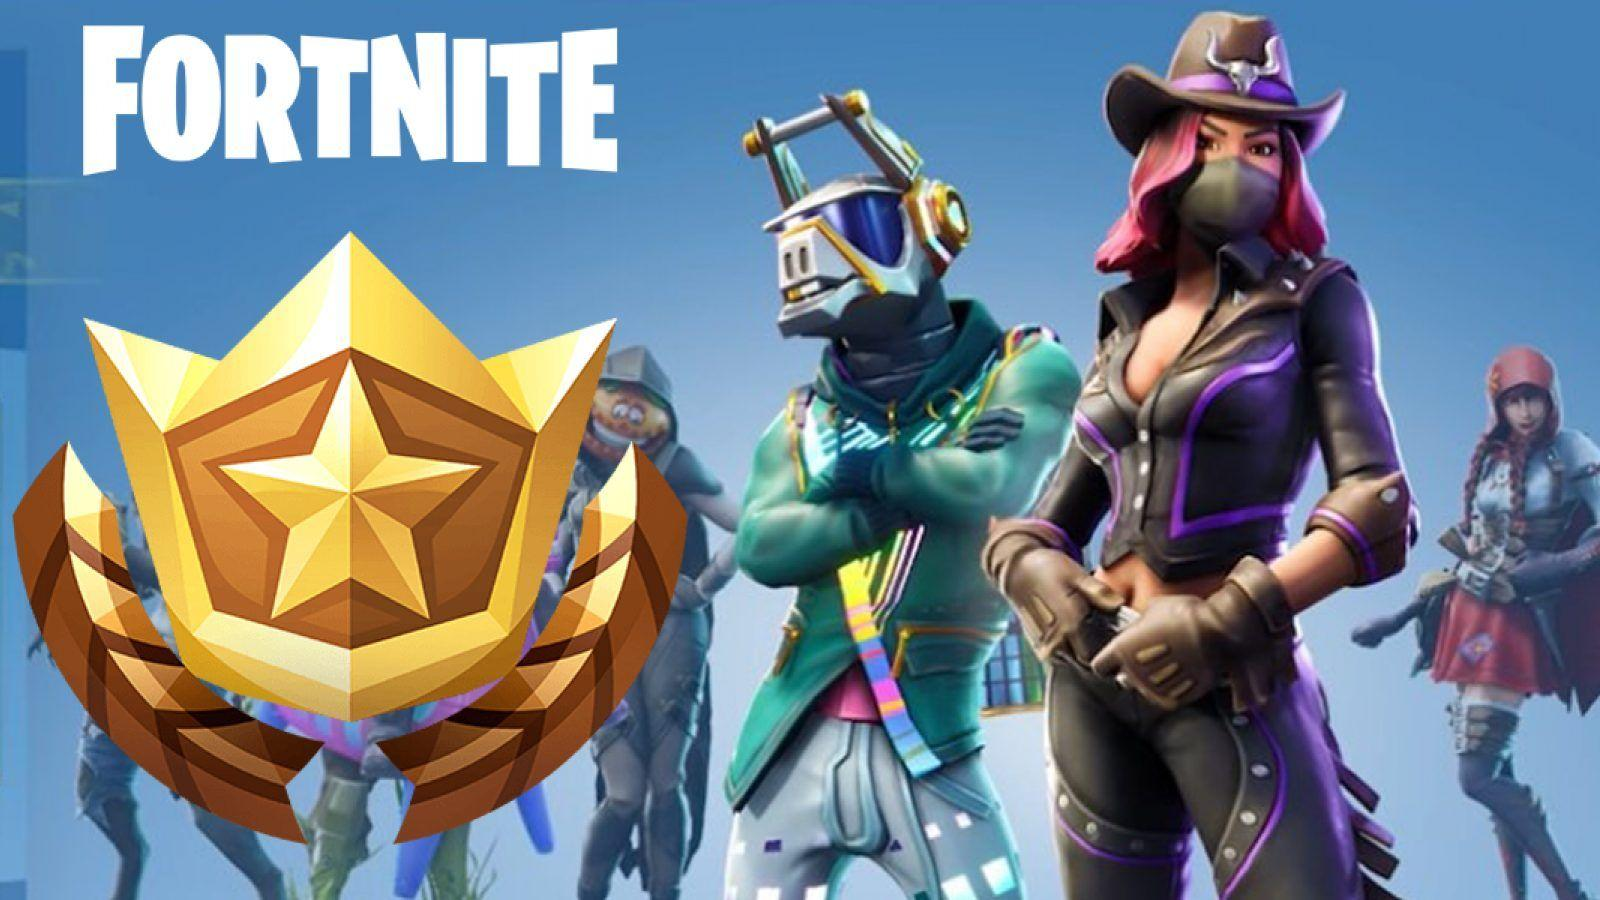 What is included in the Fortnite Season 6 Battle Pass? Skins